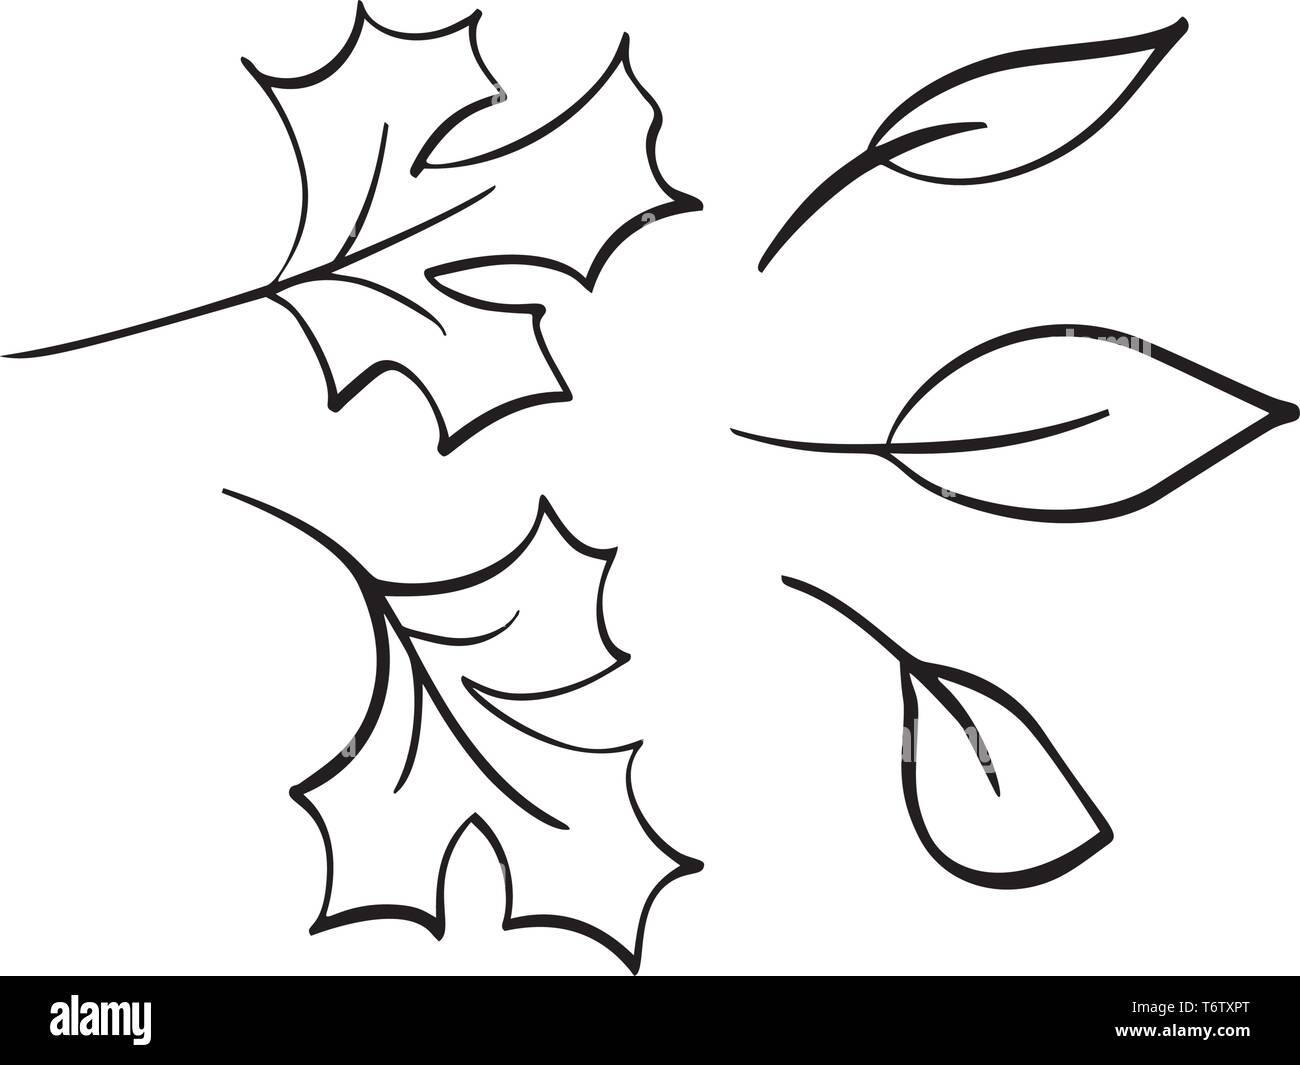 Vector Collection Of Hand Drawn Autumn Leaves Isolated Sketch Black And White Objects Beautiful Fall Drawing Elements Stock Vector Image Art Alamy